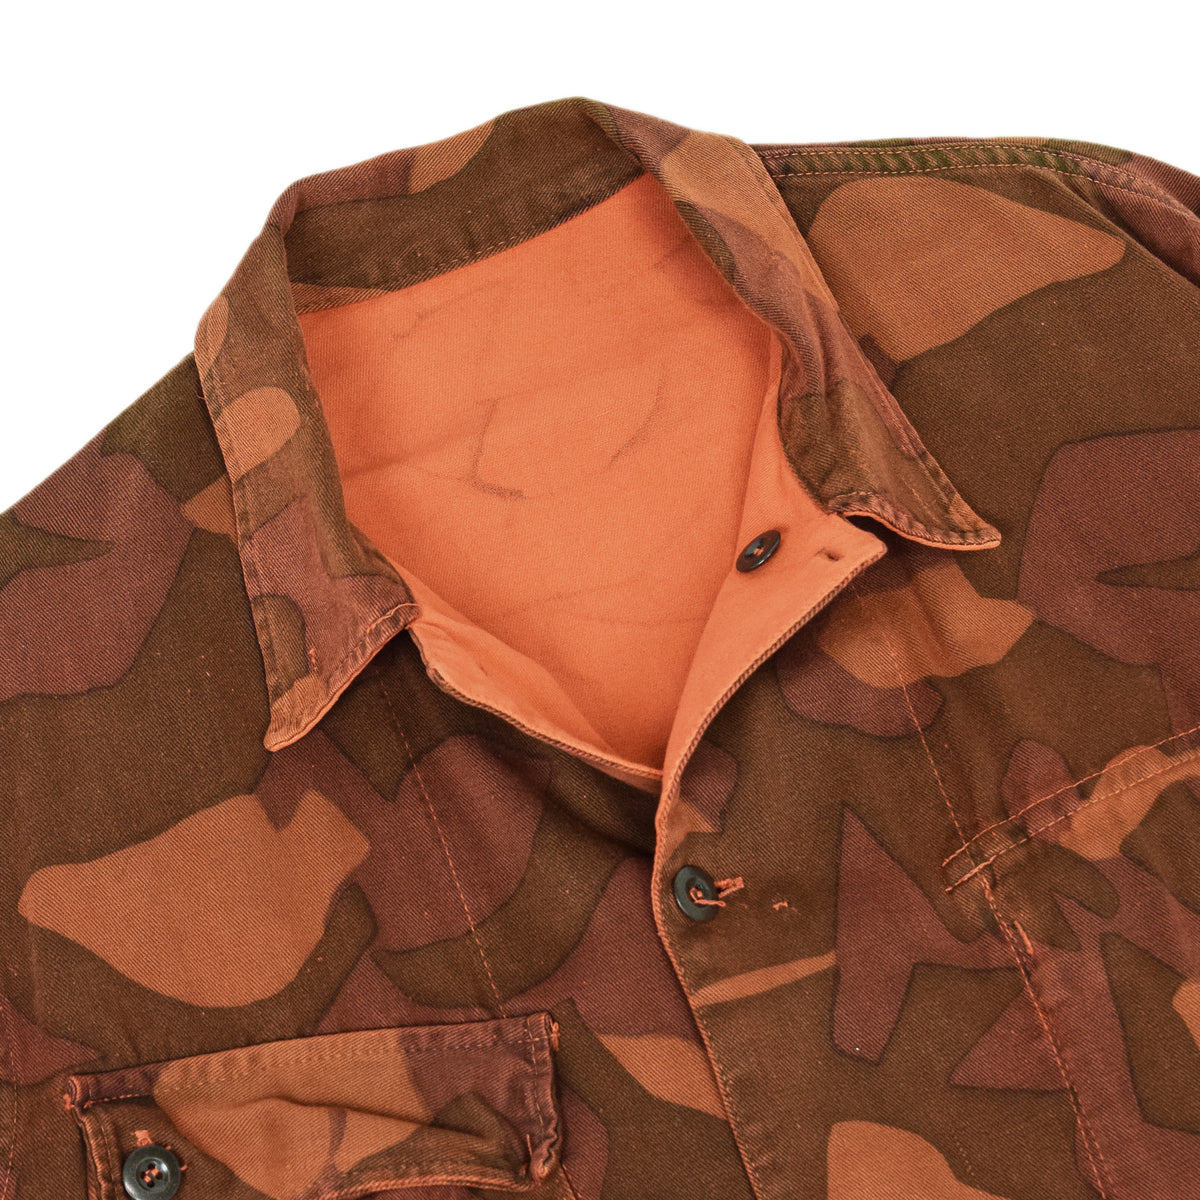 Vintage 60s Military Finnish Army Orange Overdyed Camo Mountain Jacket L / XL COLLAR